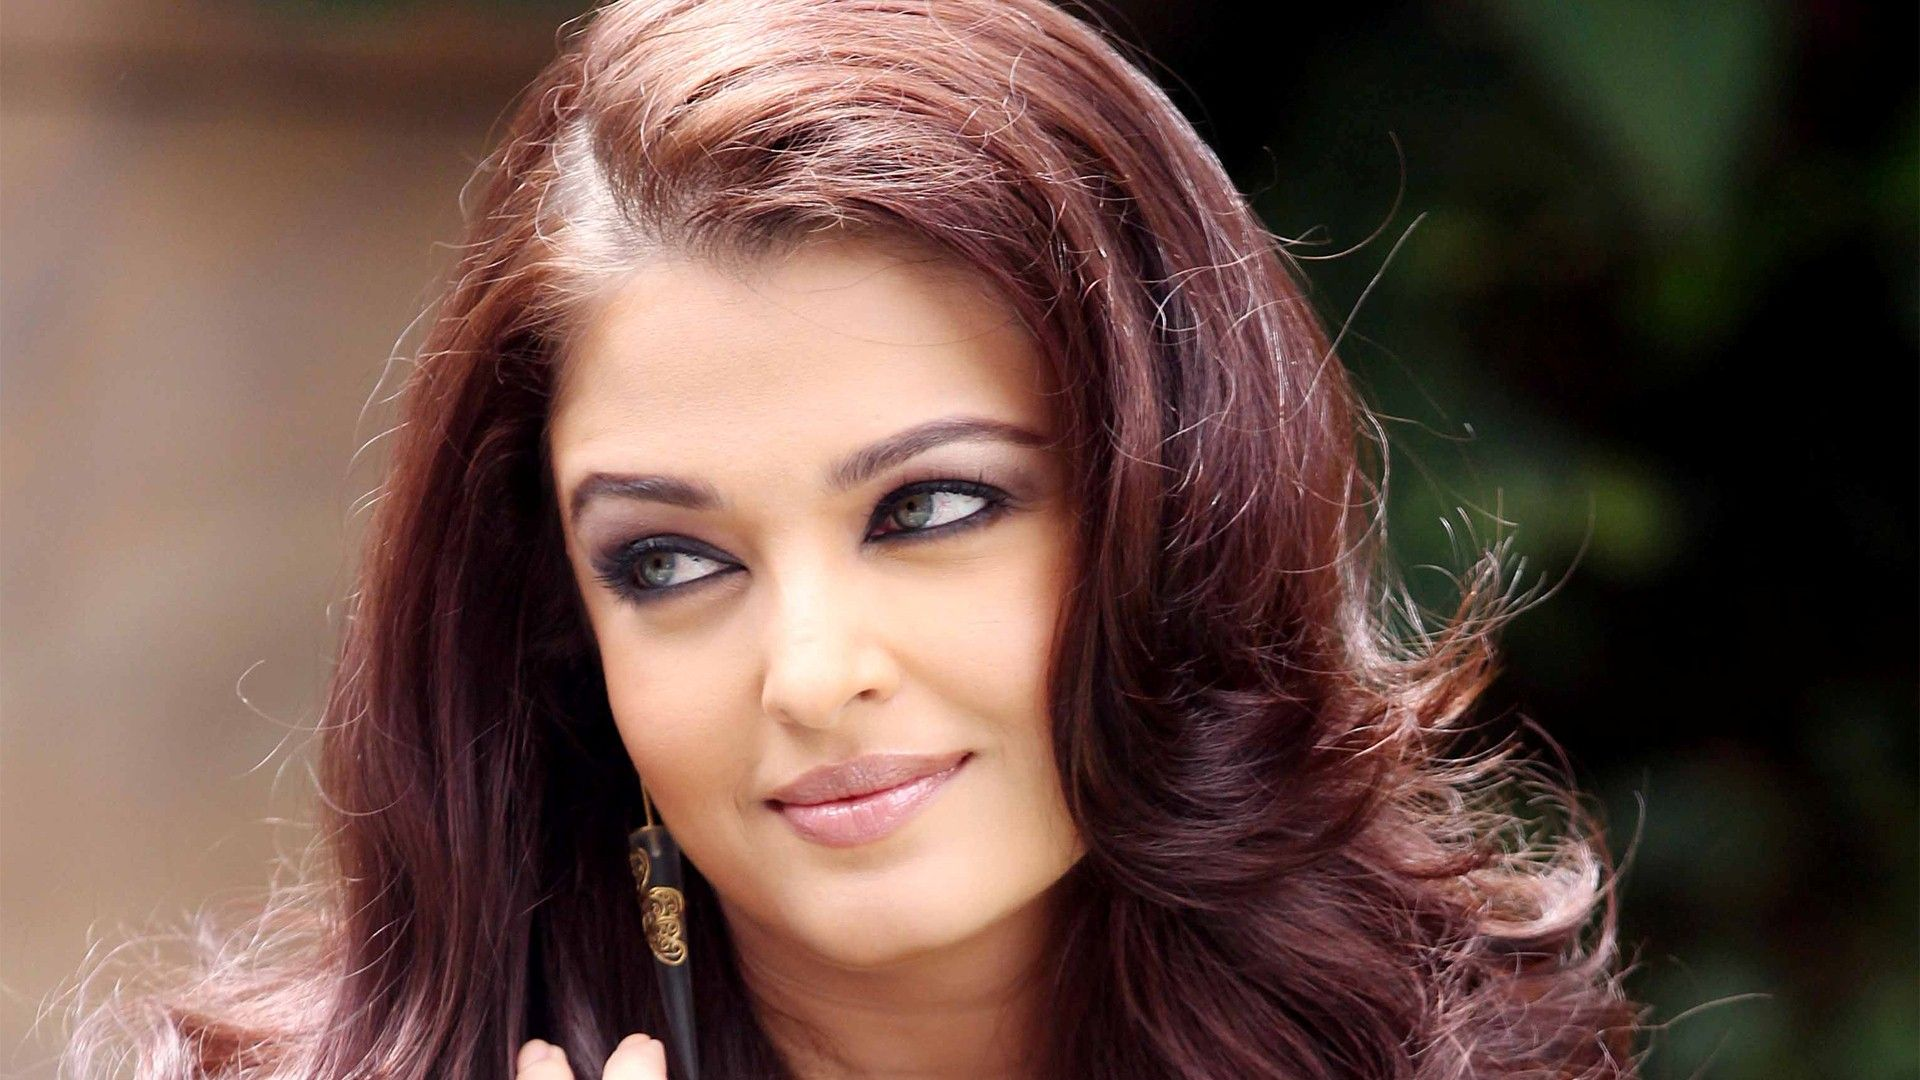 Aishwarya Rai Hd Wallpapers 9 Aishwarya Rai Wallpaper Aishwarya Rai Movies Celebrities Female